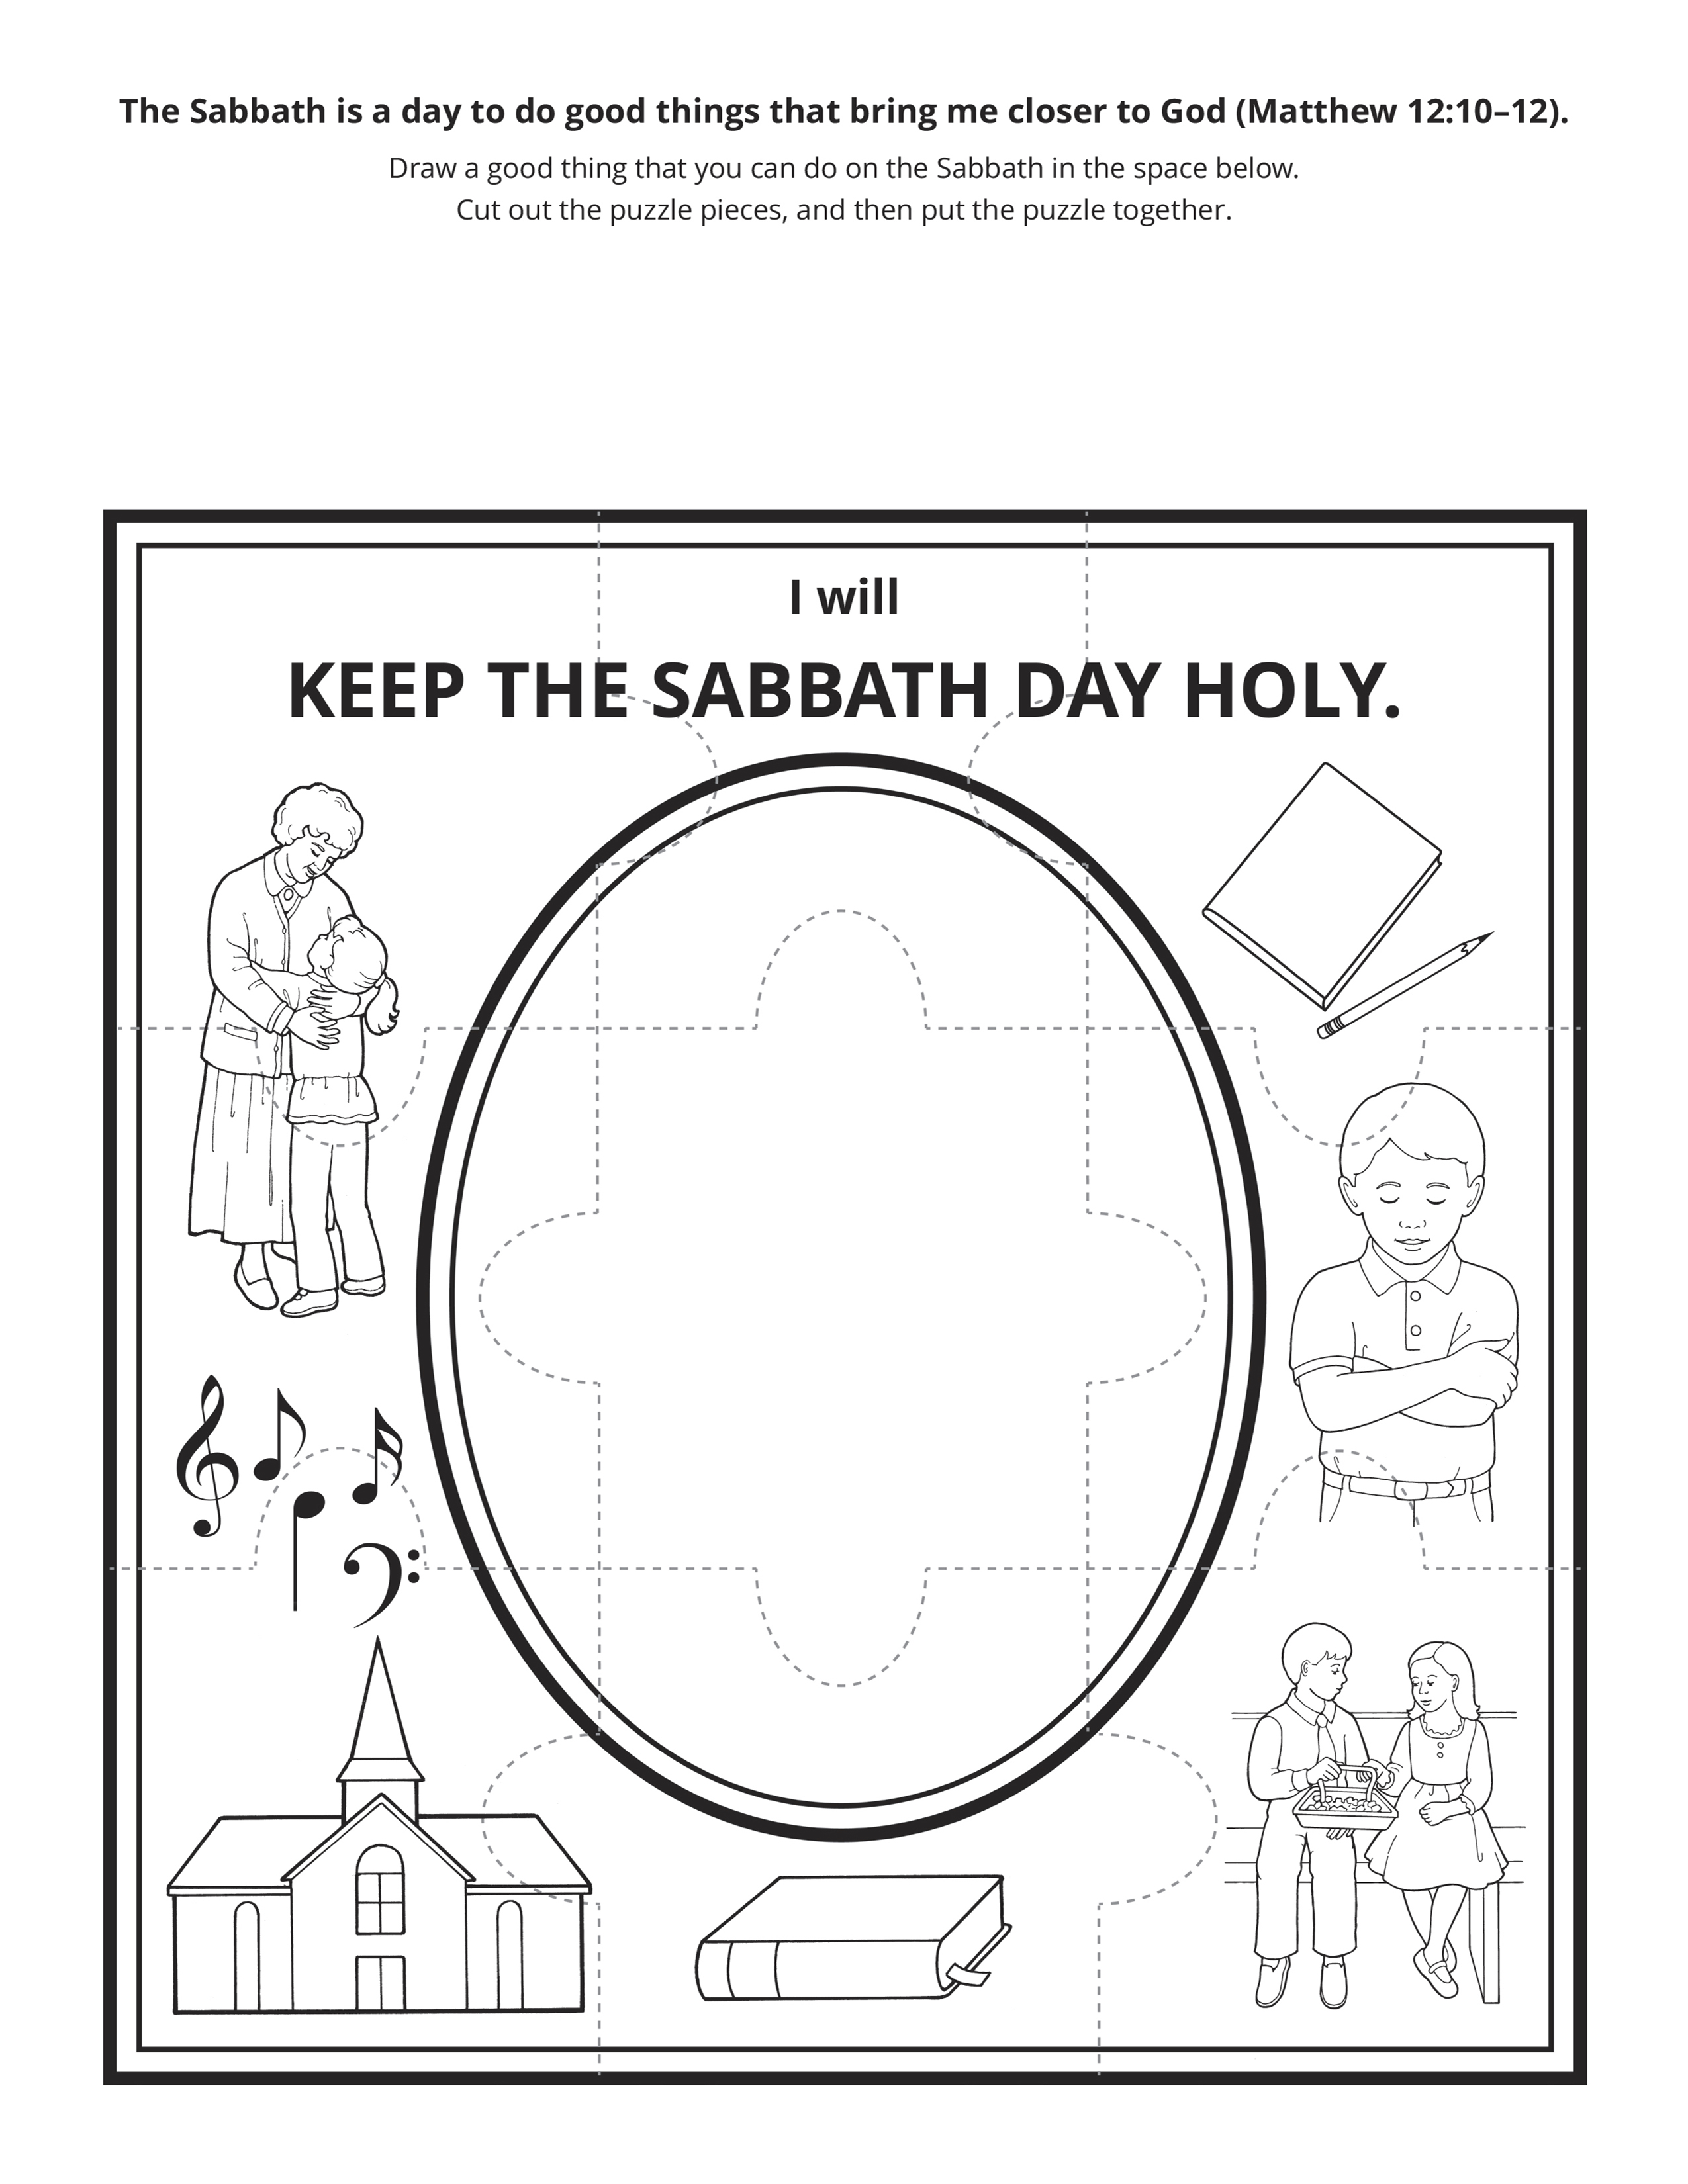 An illustration of ways to keep the Sabbath day holy.